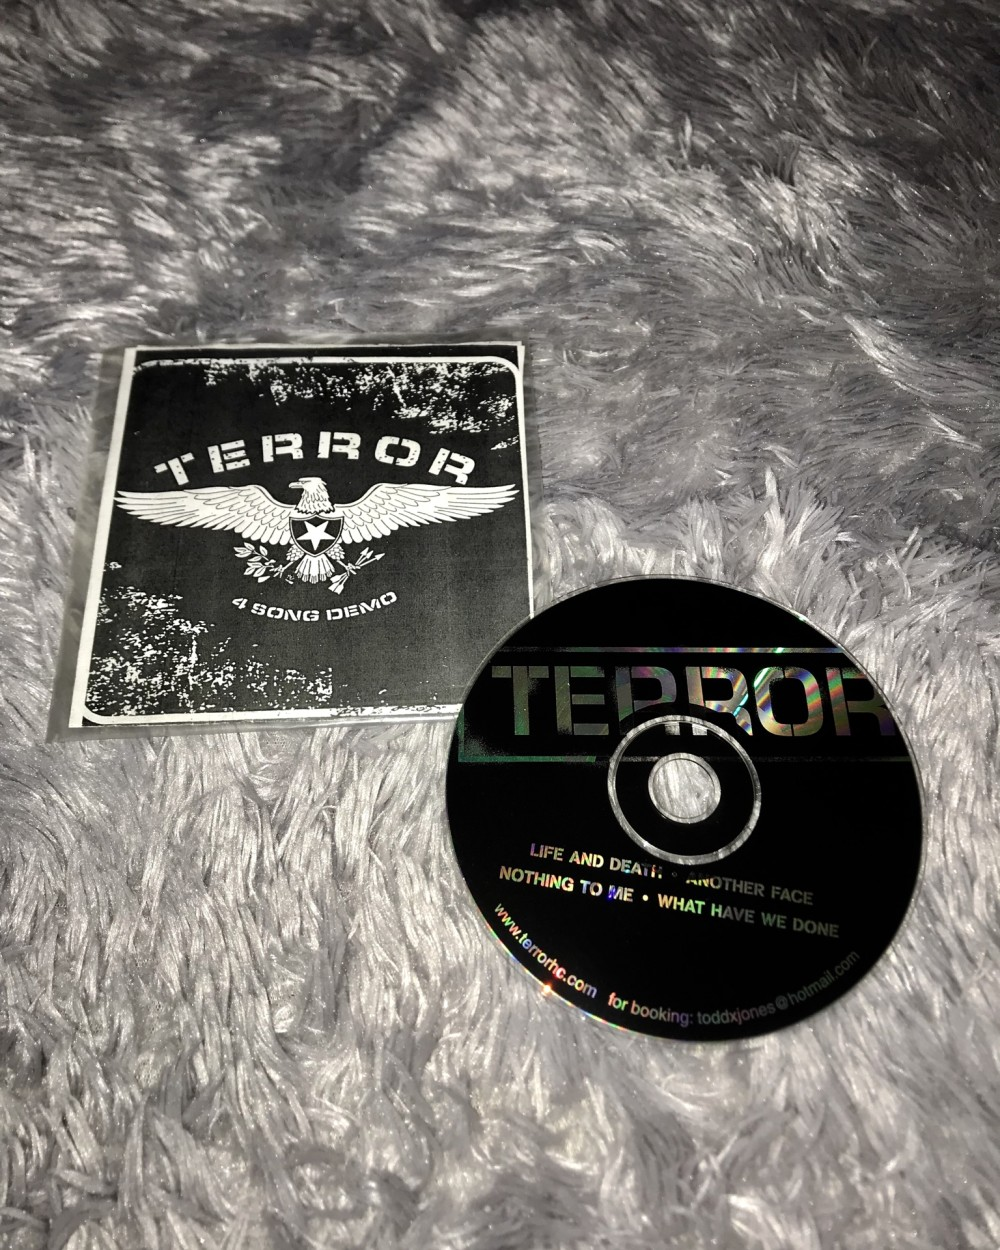 Terror - Life and Death - The Demo CD Photo